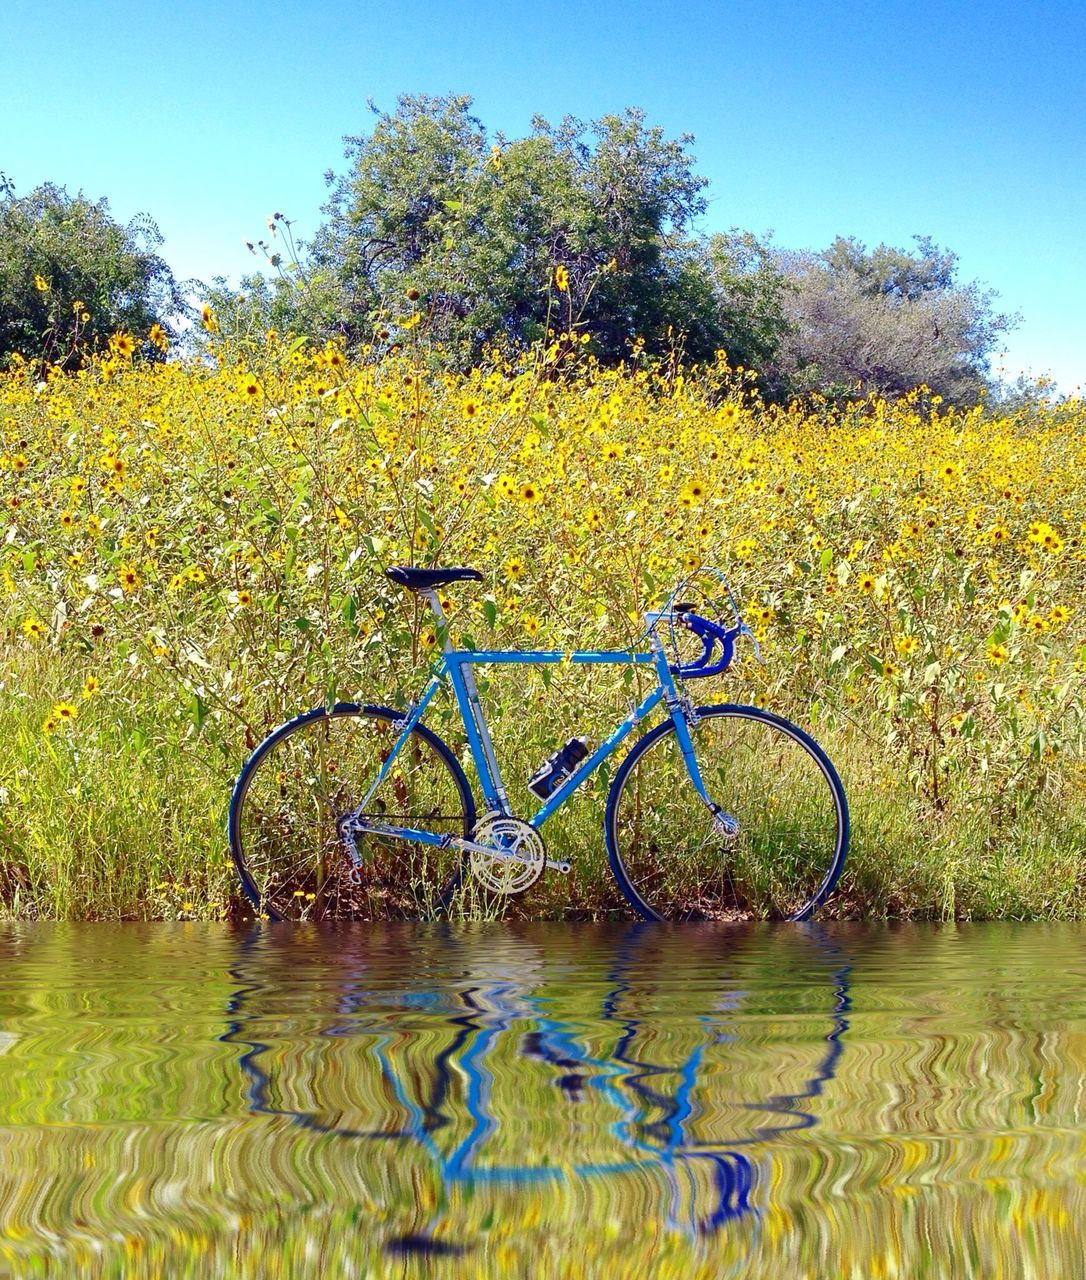 Bicycle In Water Against Yellow Flowers